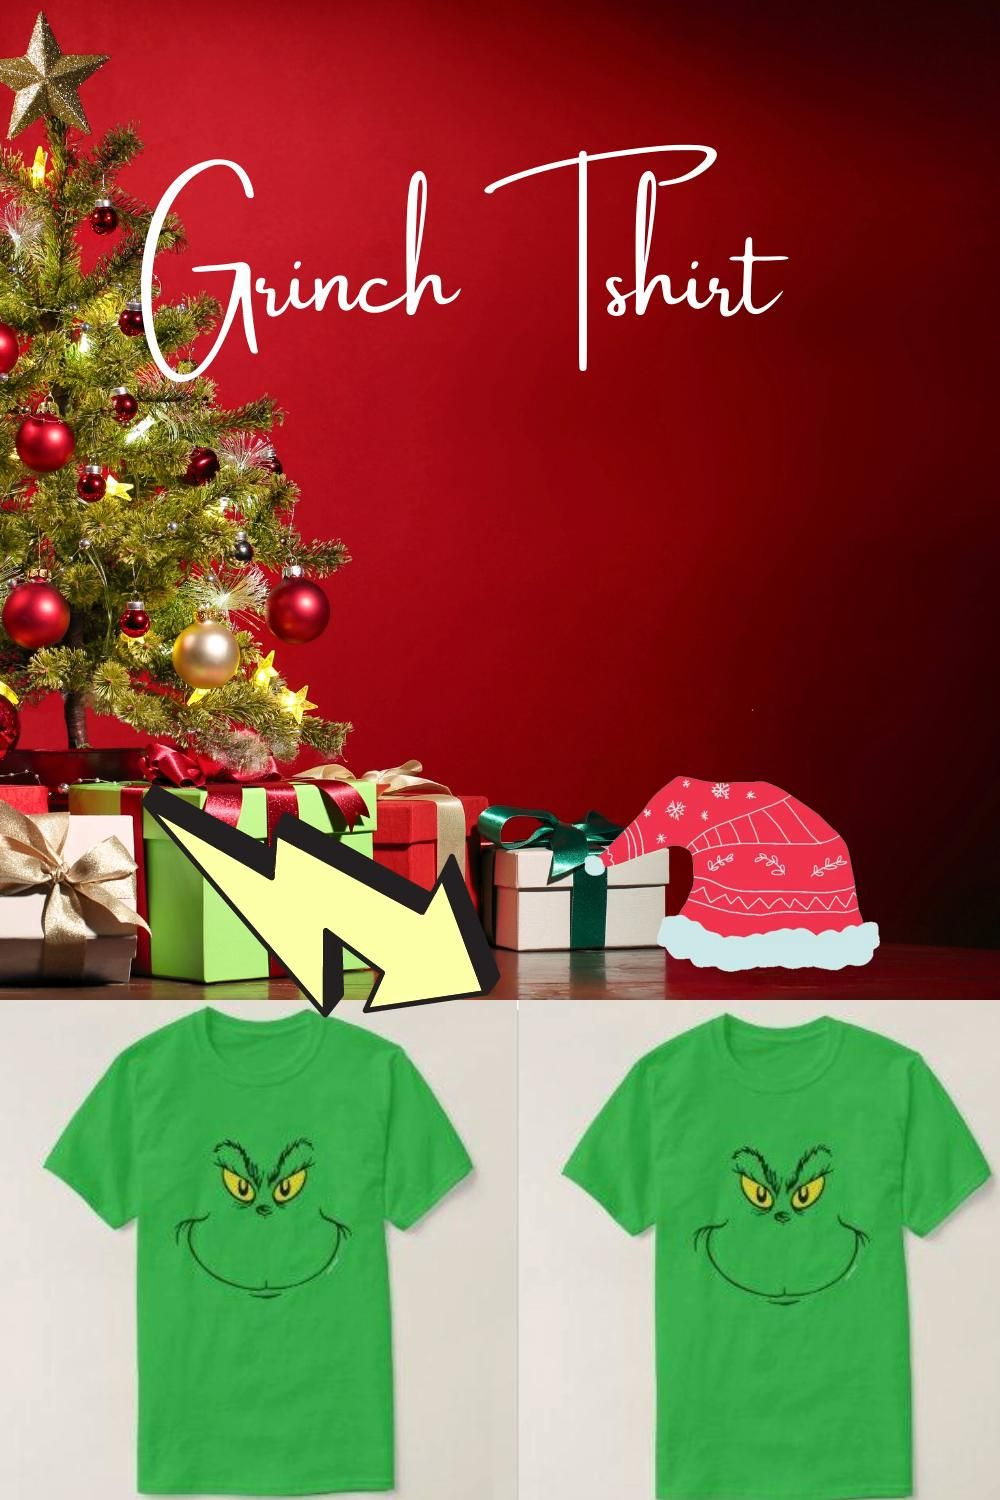 How The Grinch Stole Christmas Face T Shirt Zazzle Com Video Video Christmas Crafts Grinch Christmas Decorations Grinch Christmas Party